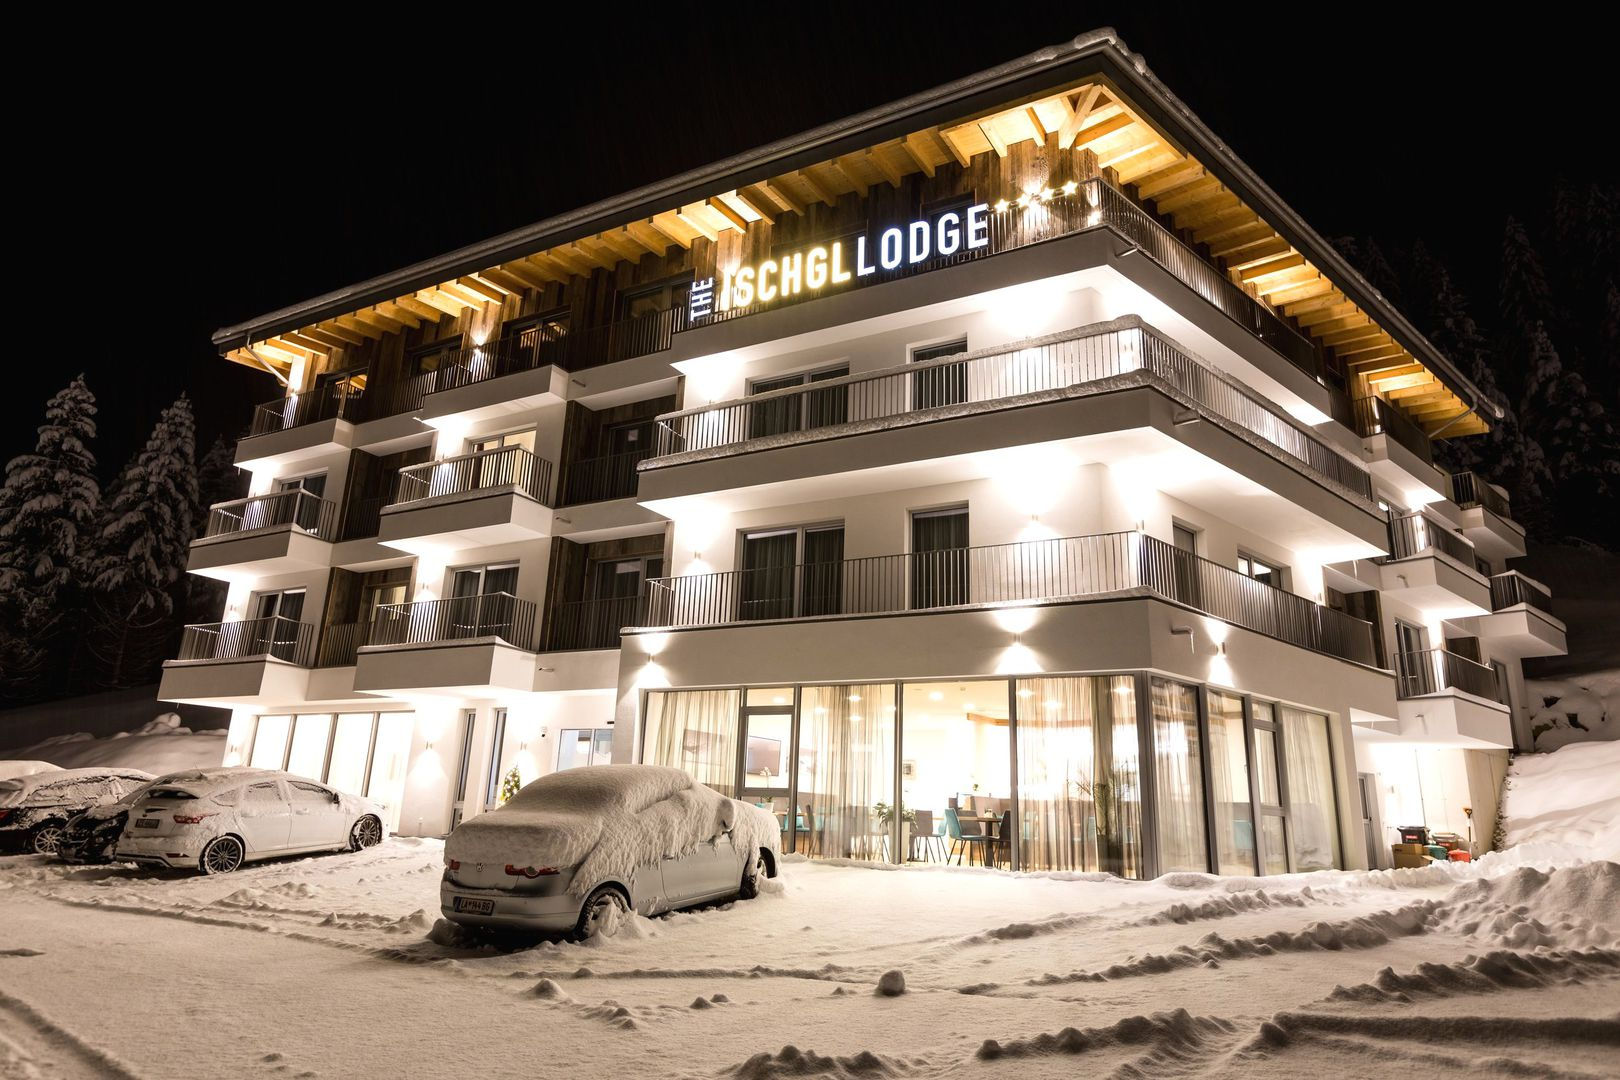 Hotel Ischgl - The Ischgl Lodge